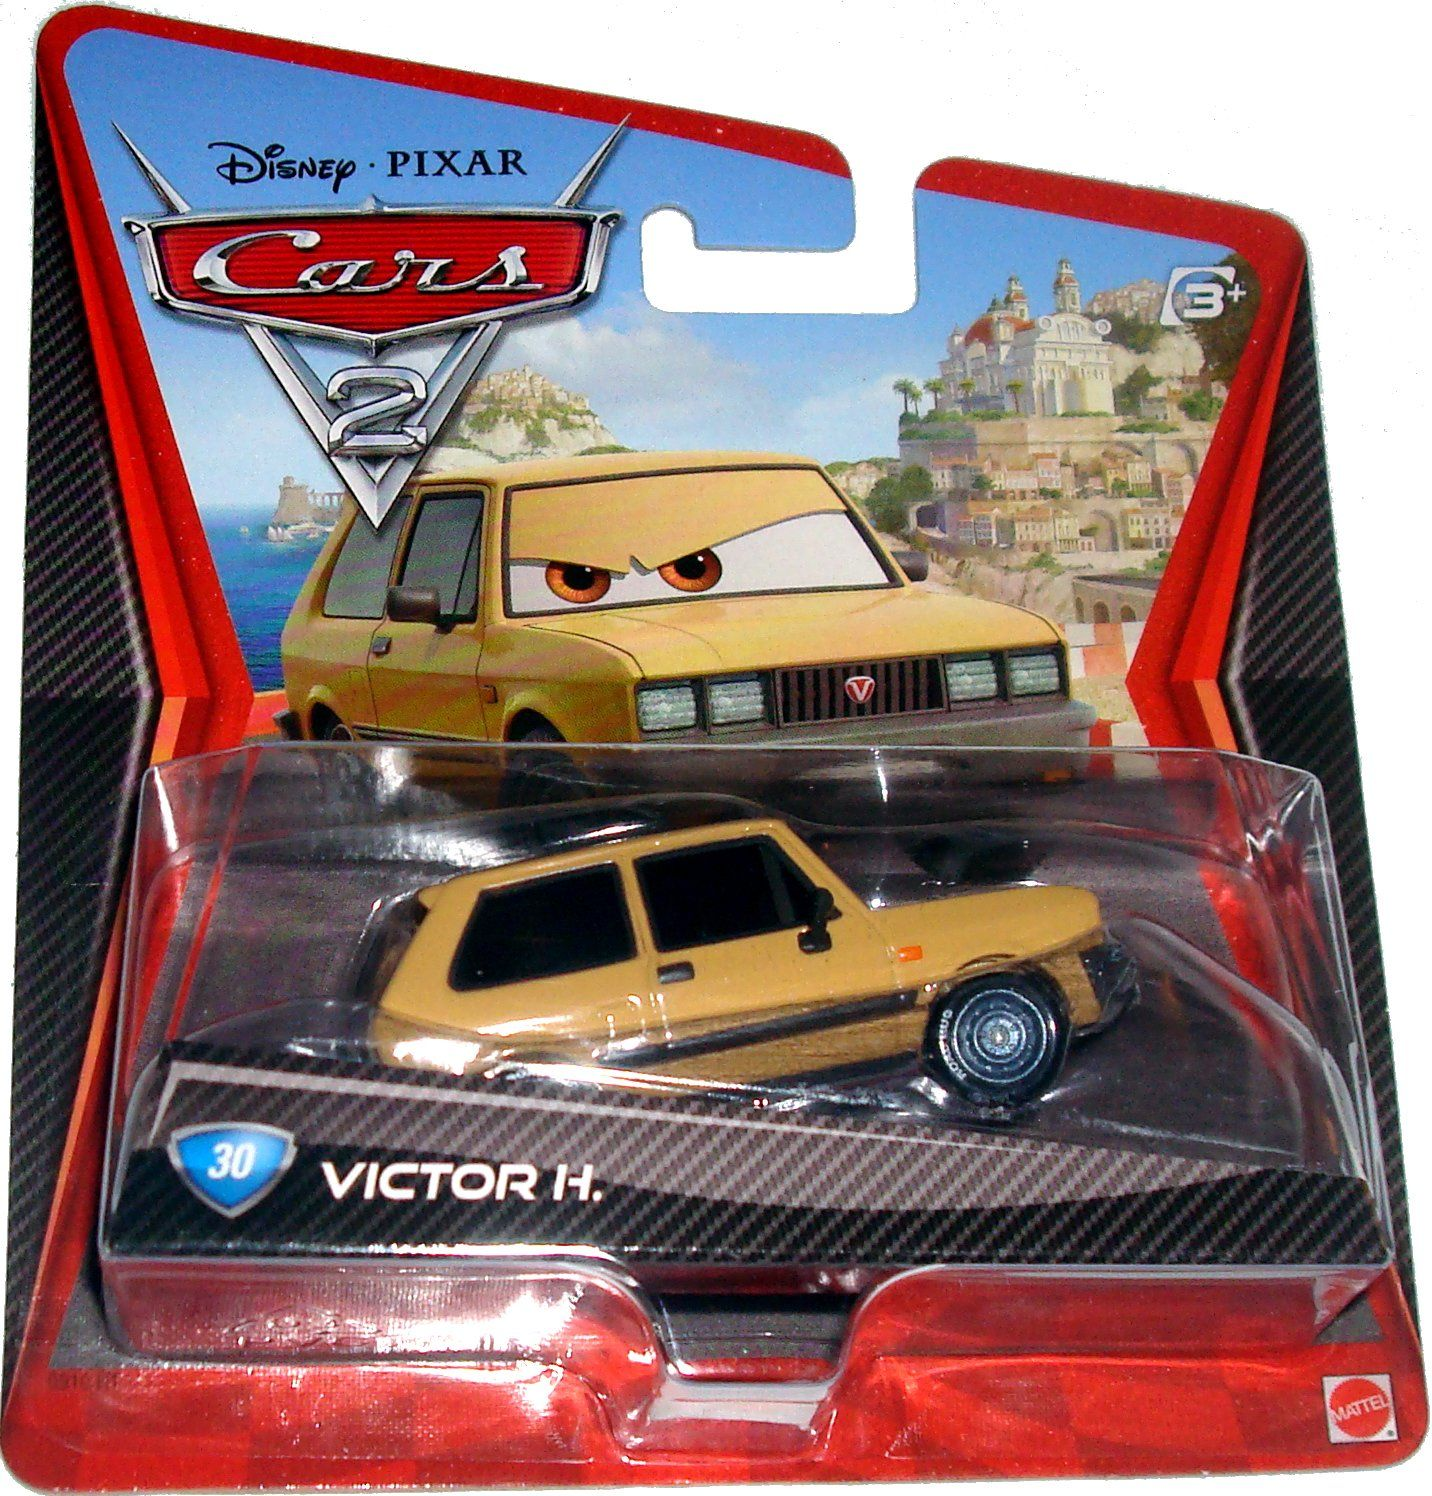 Disney Pixar Cars 2 Movie 155 Die Cast Car 30 Victor H